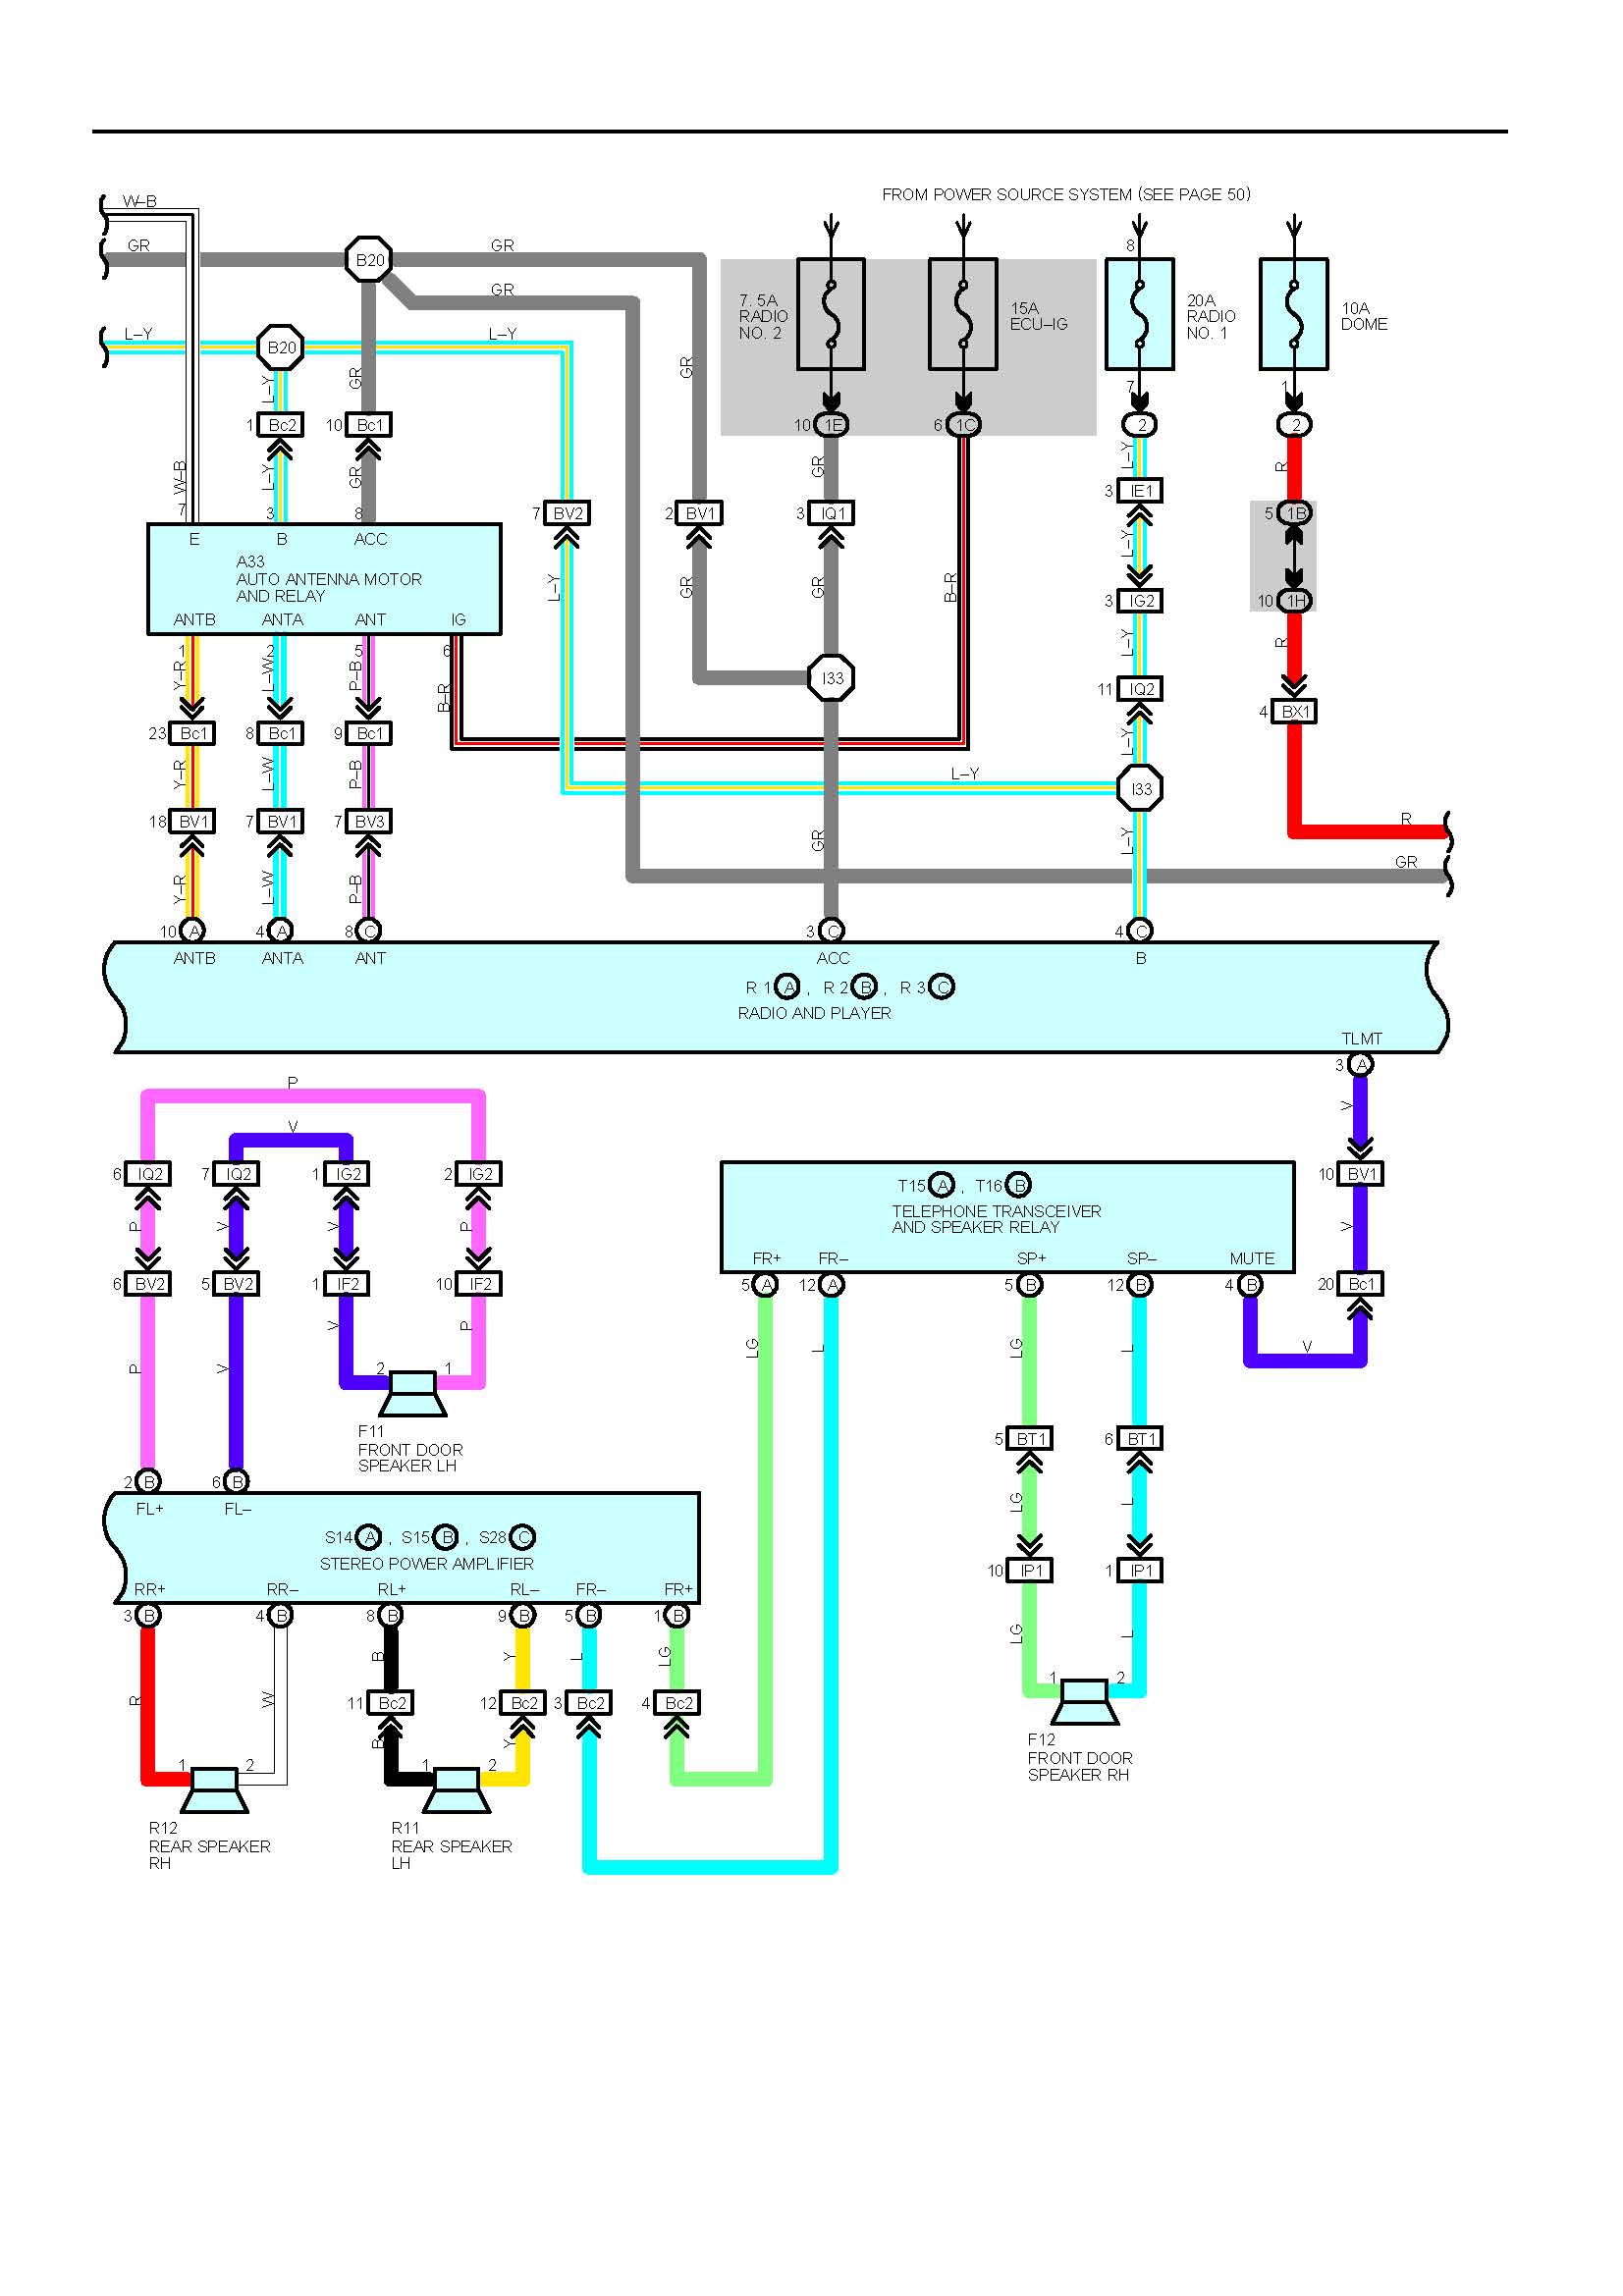 Tremendous Wiring Diagram Nissan Yd25 Wiring Library Wiring 101 Capemaxxcnl